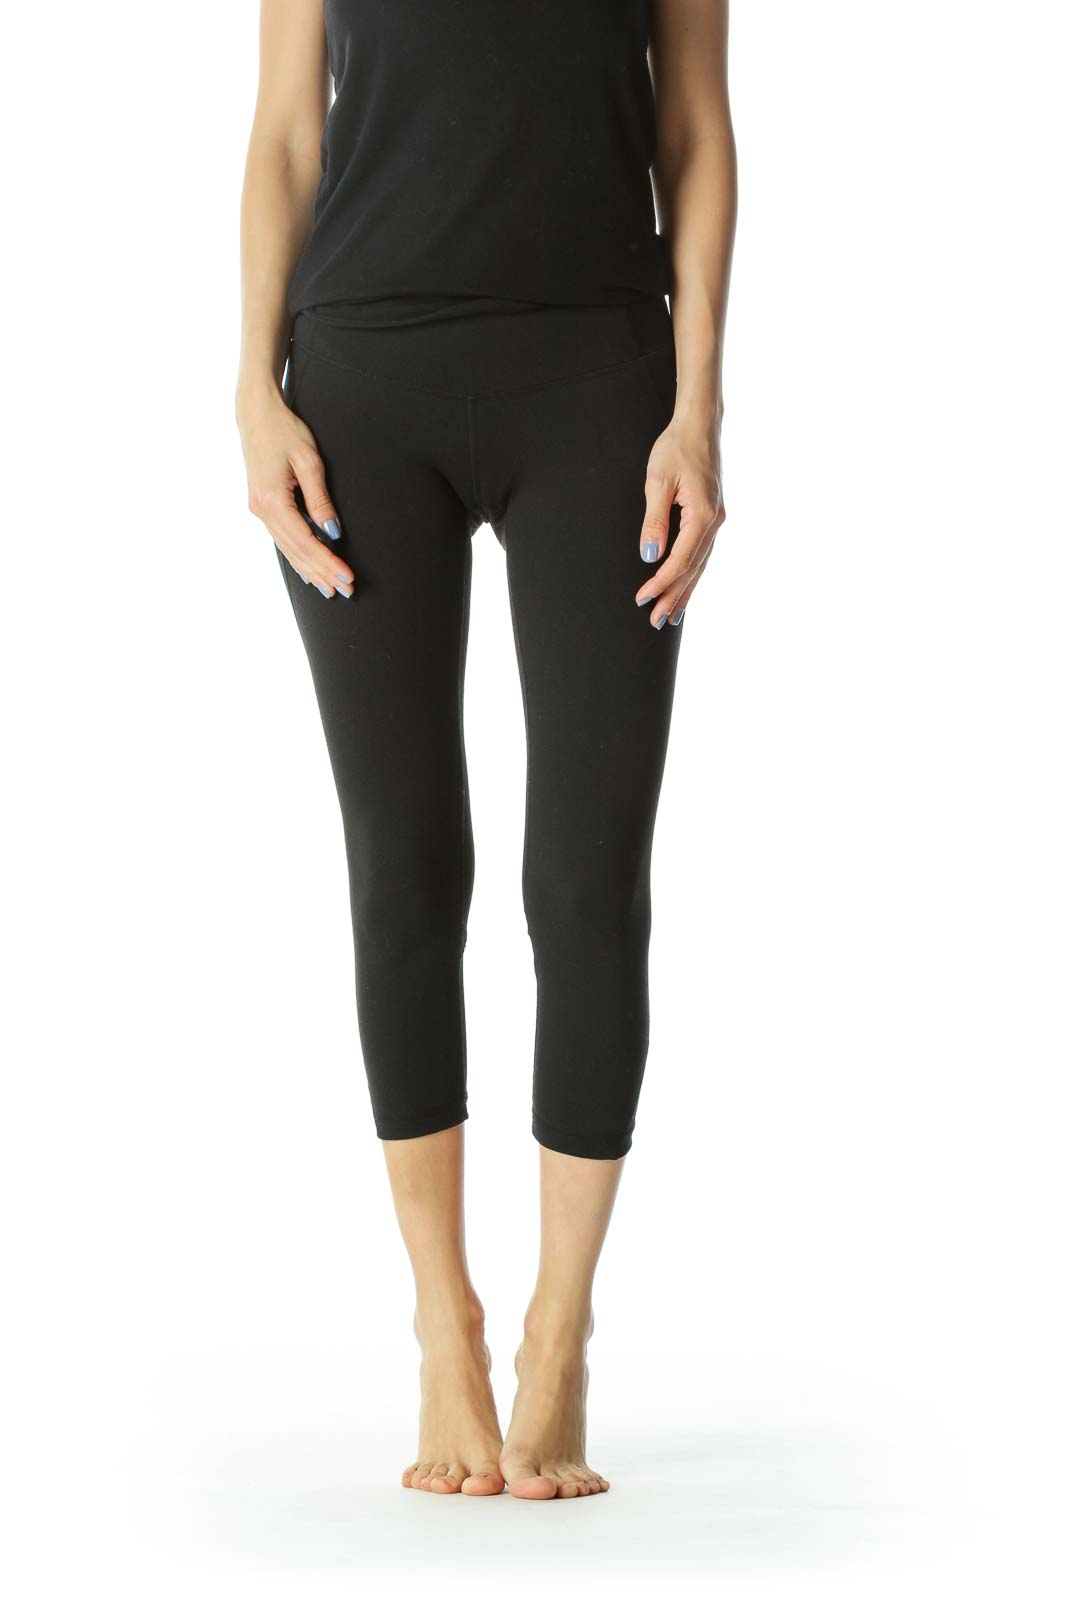 Black Cropped Activewear Mesh Detail Leggings